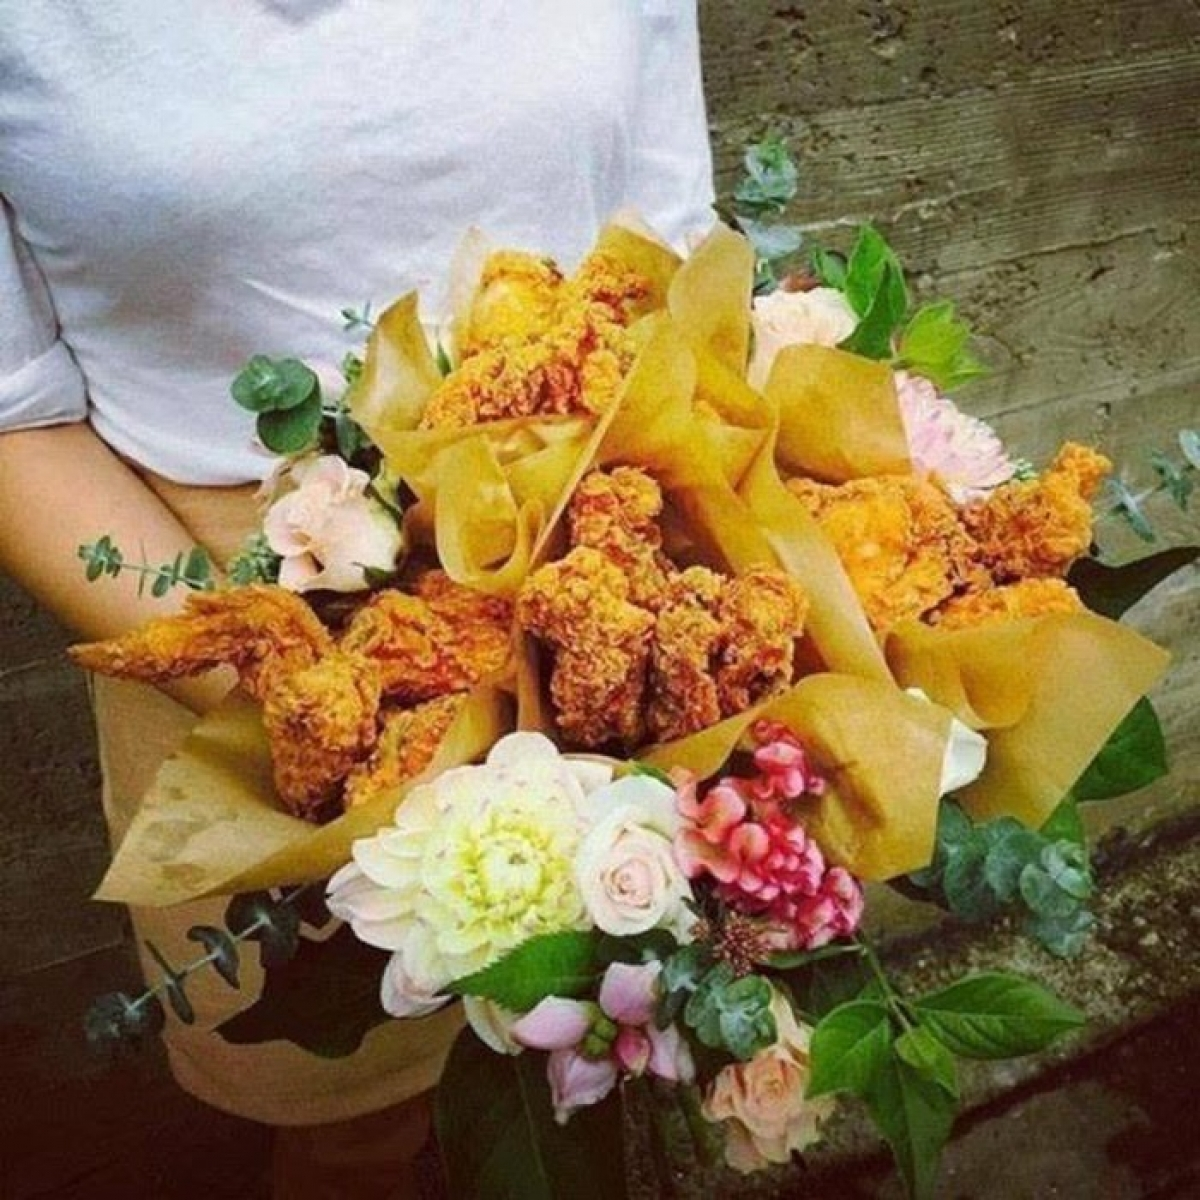 A tasty fried chicken bouquet is a leading choice among customers.